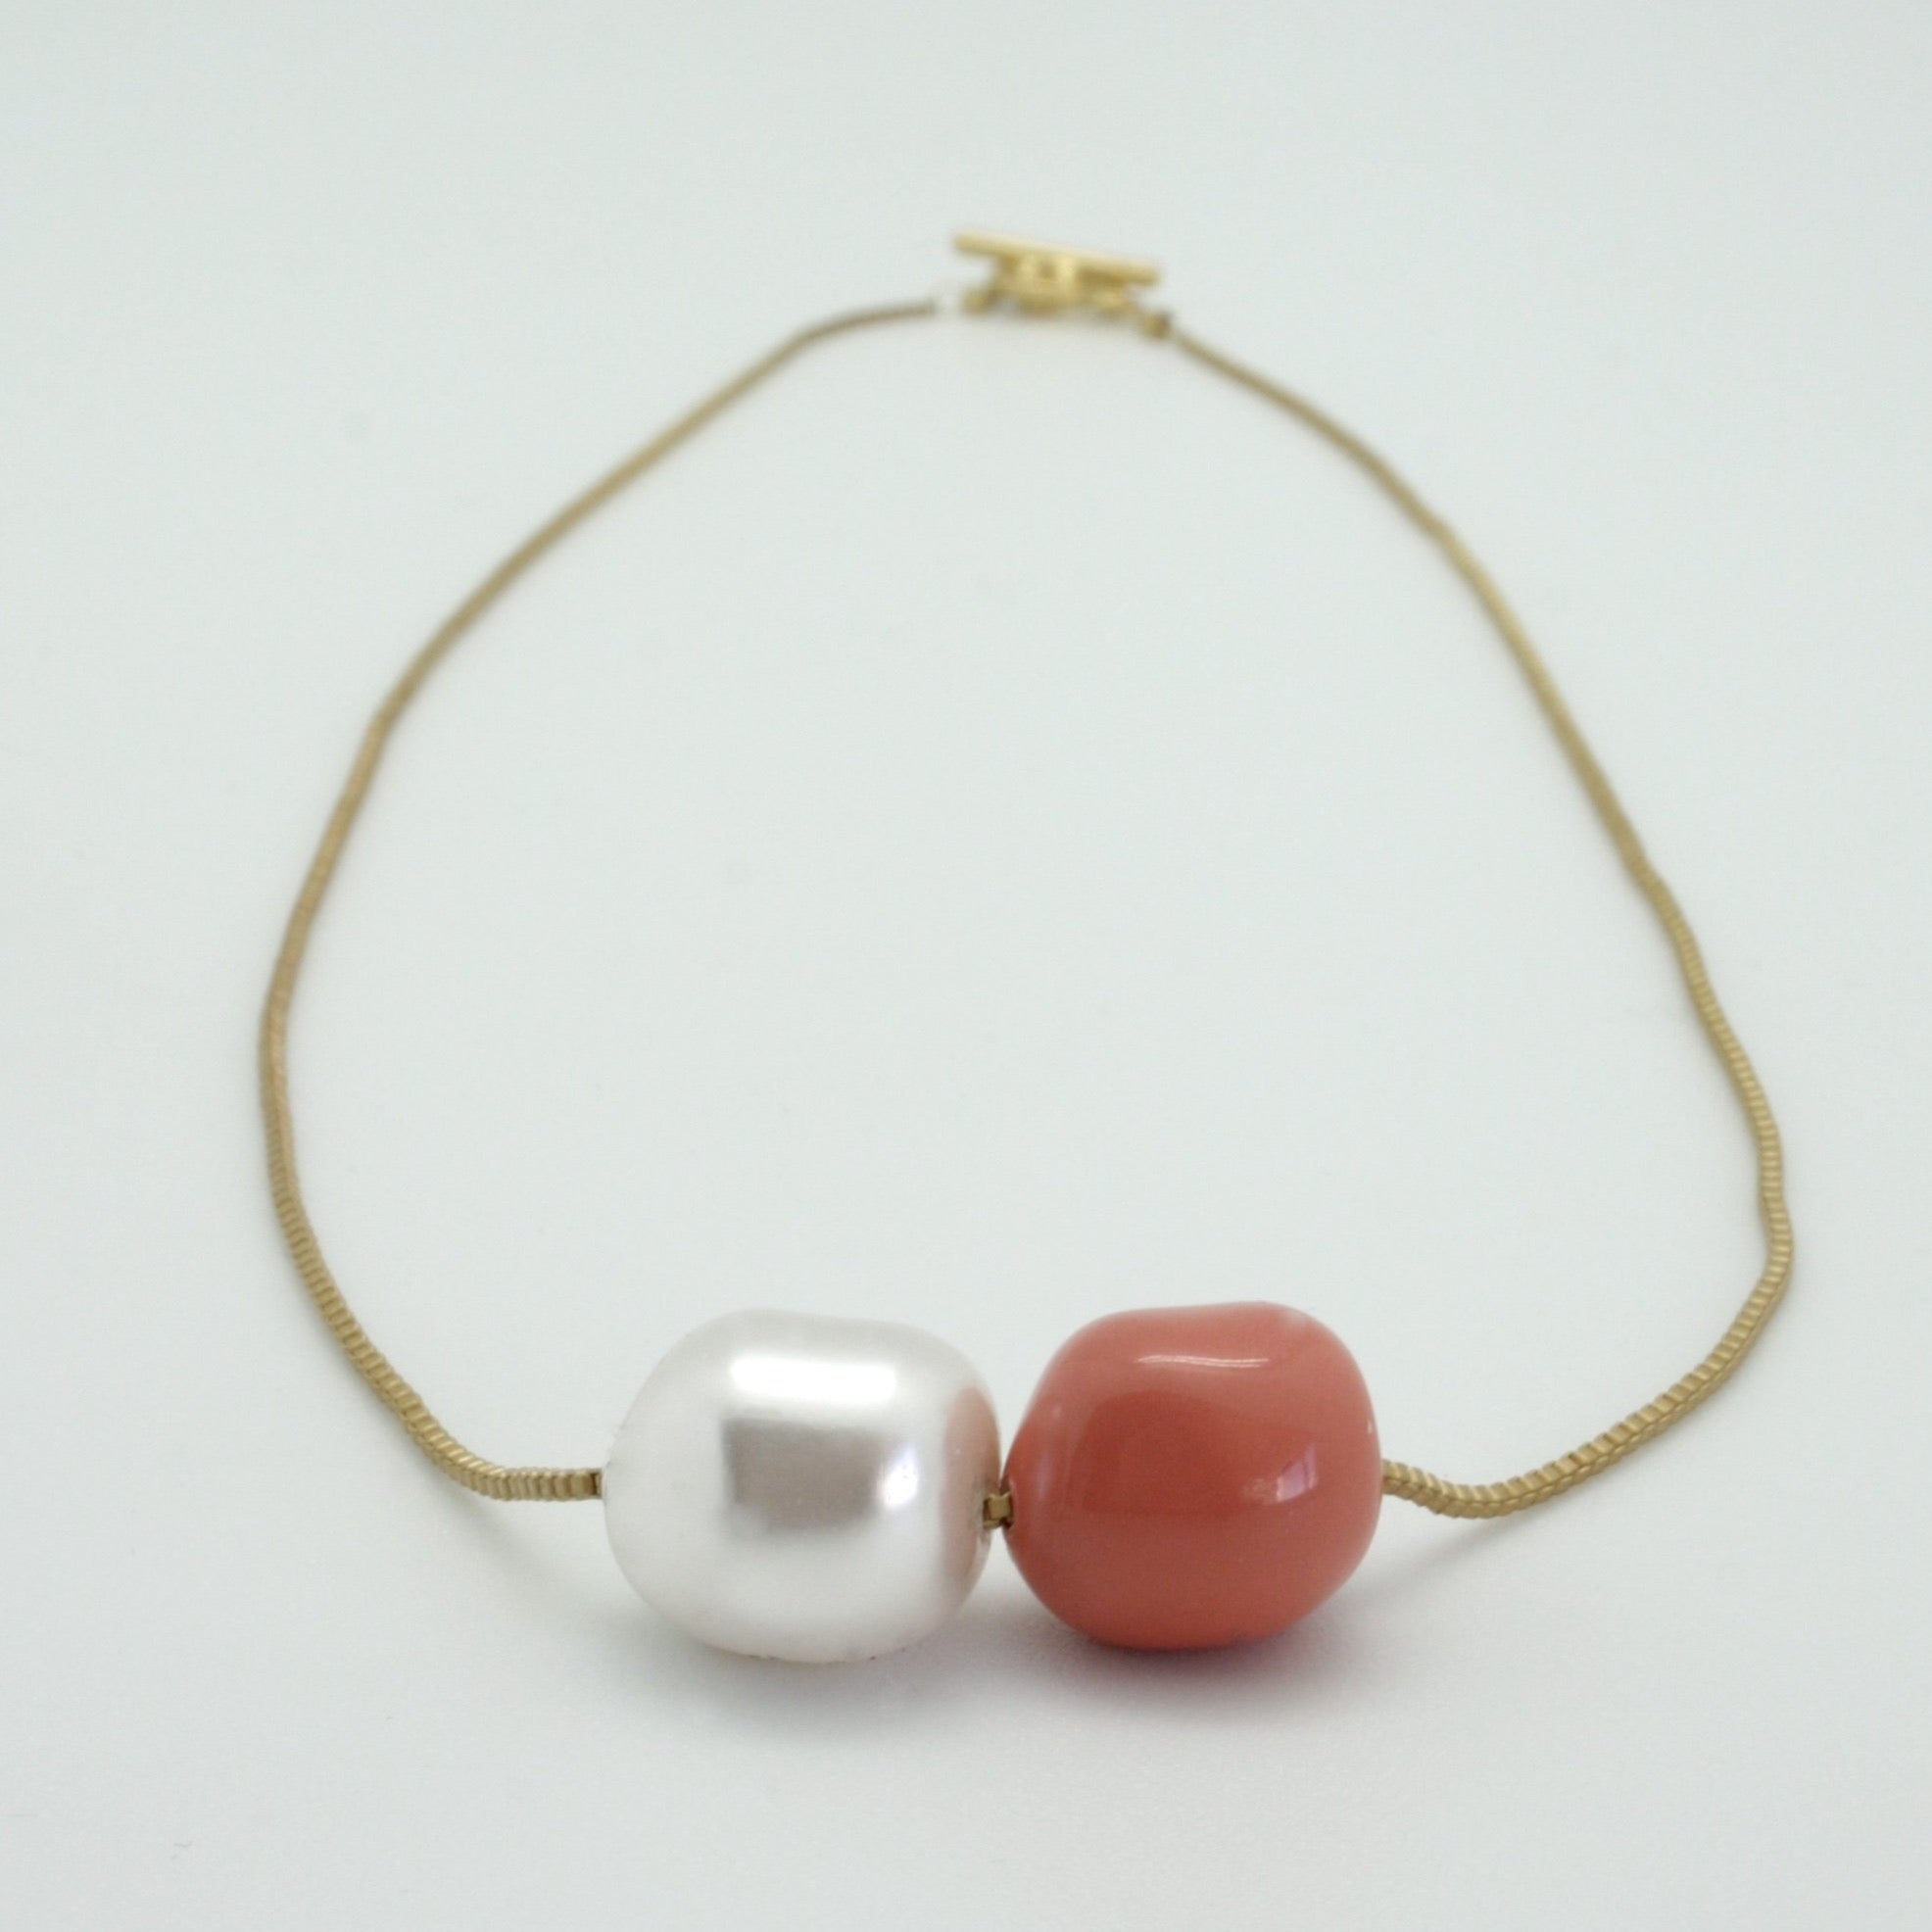 double nugget necklace with pearl + coral